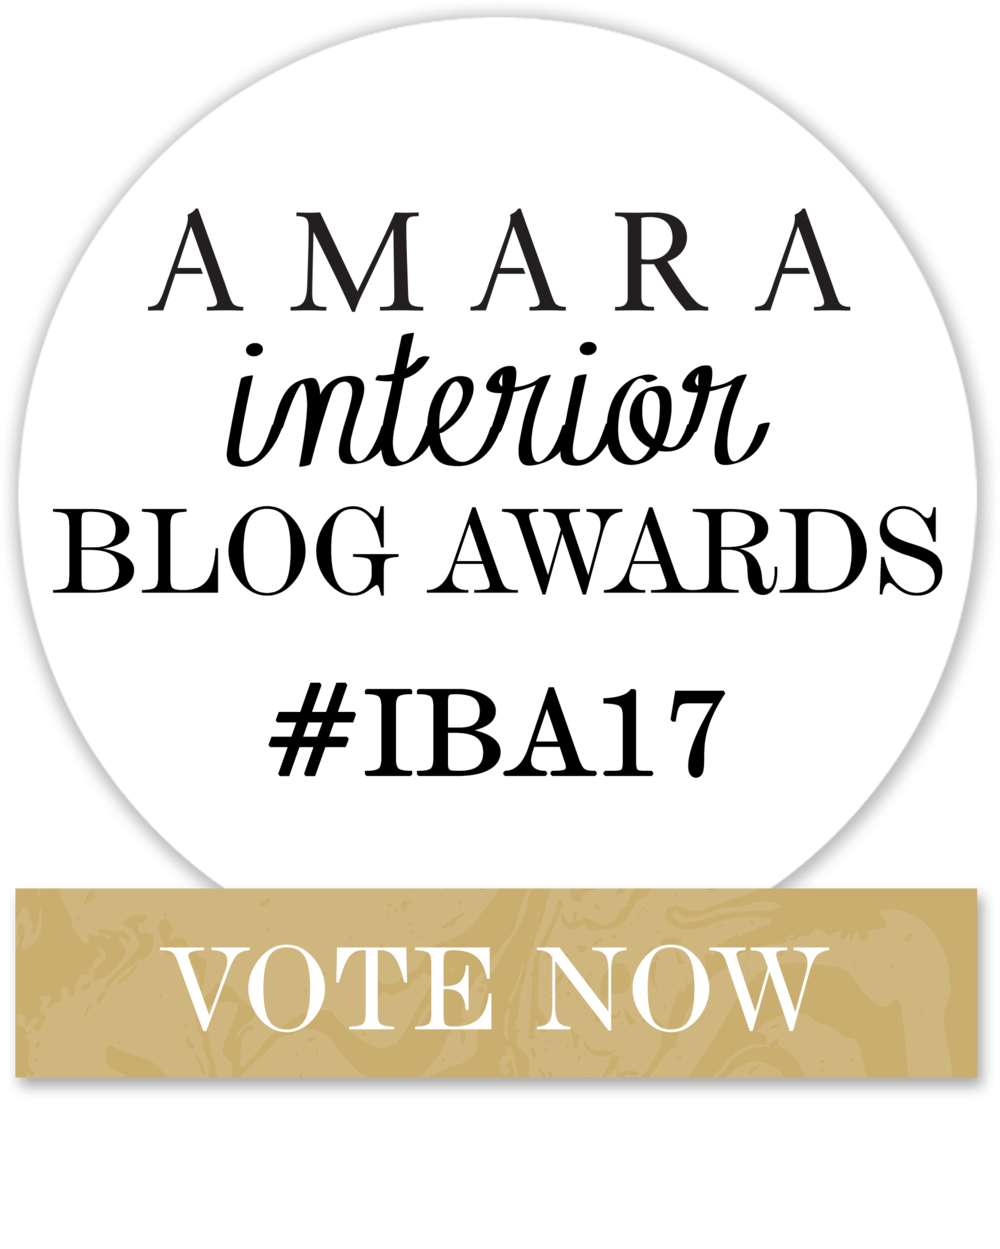 Vote-now Amara.png